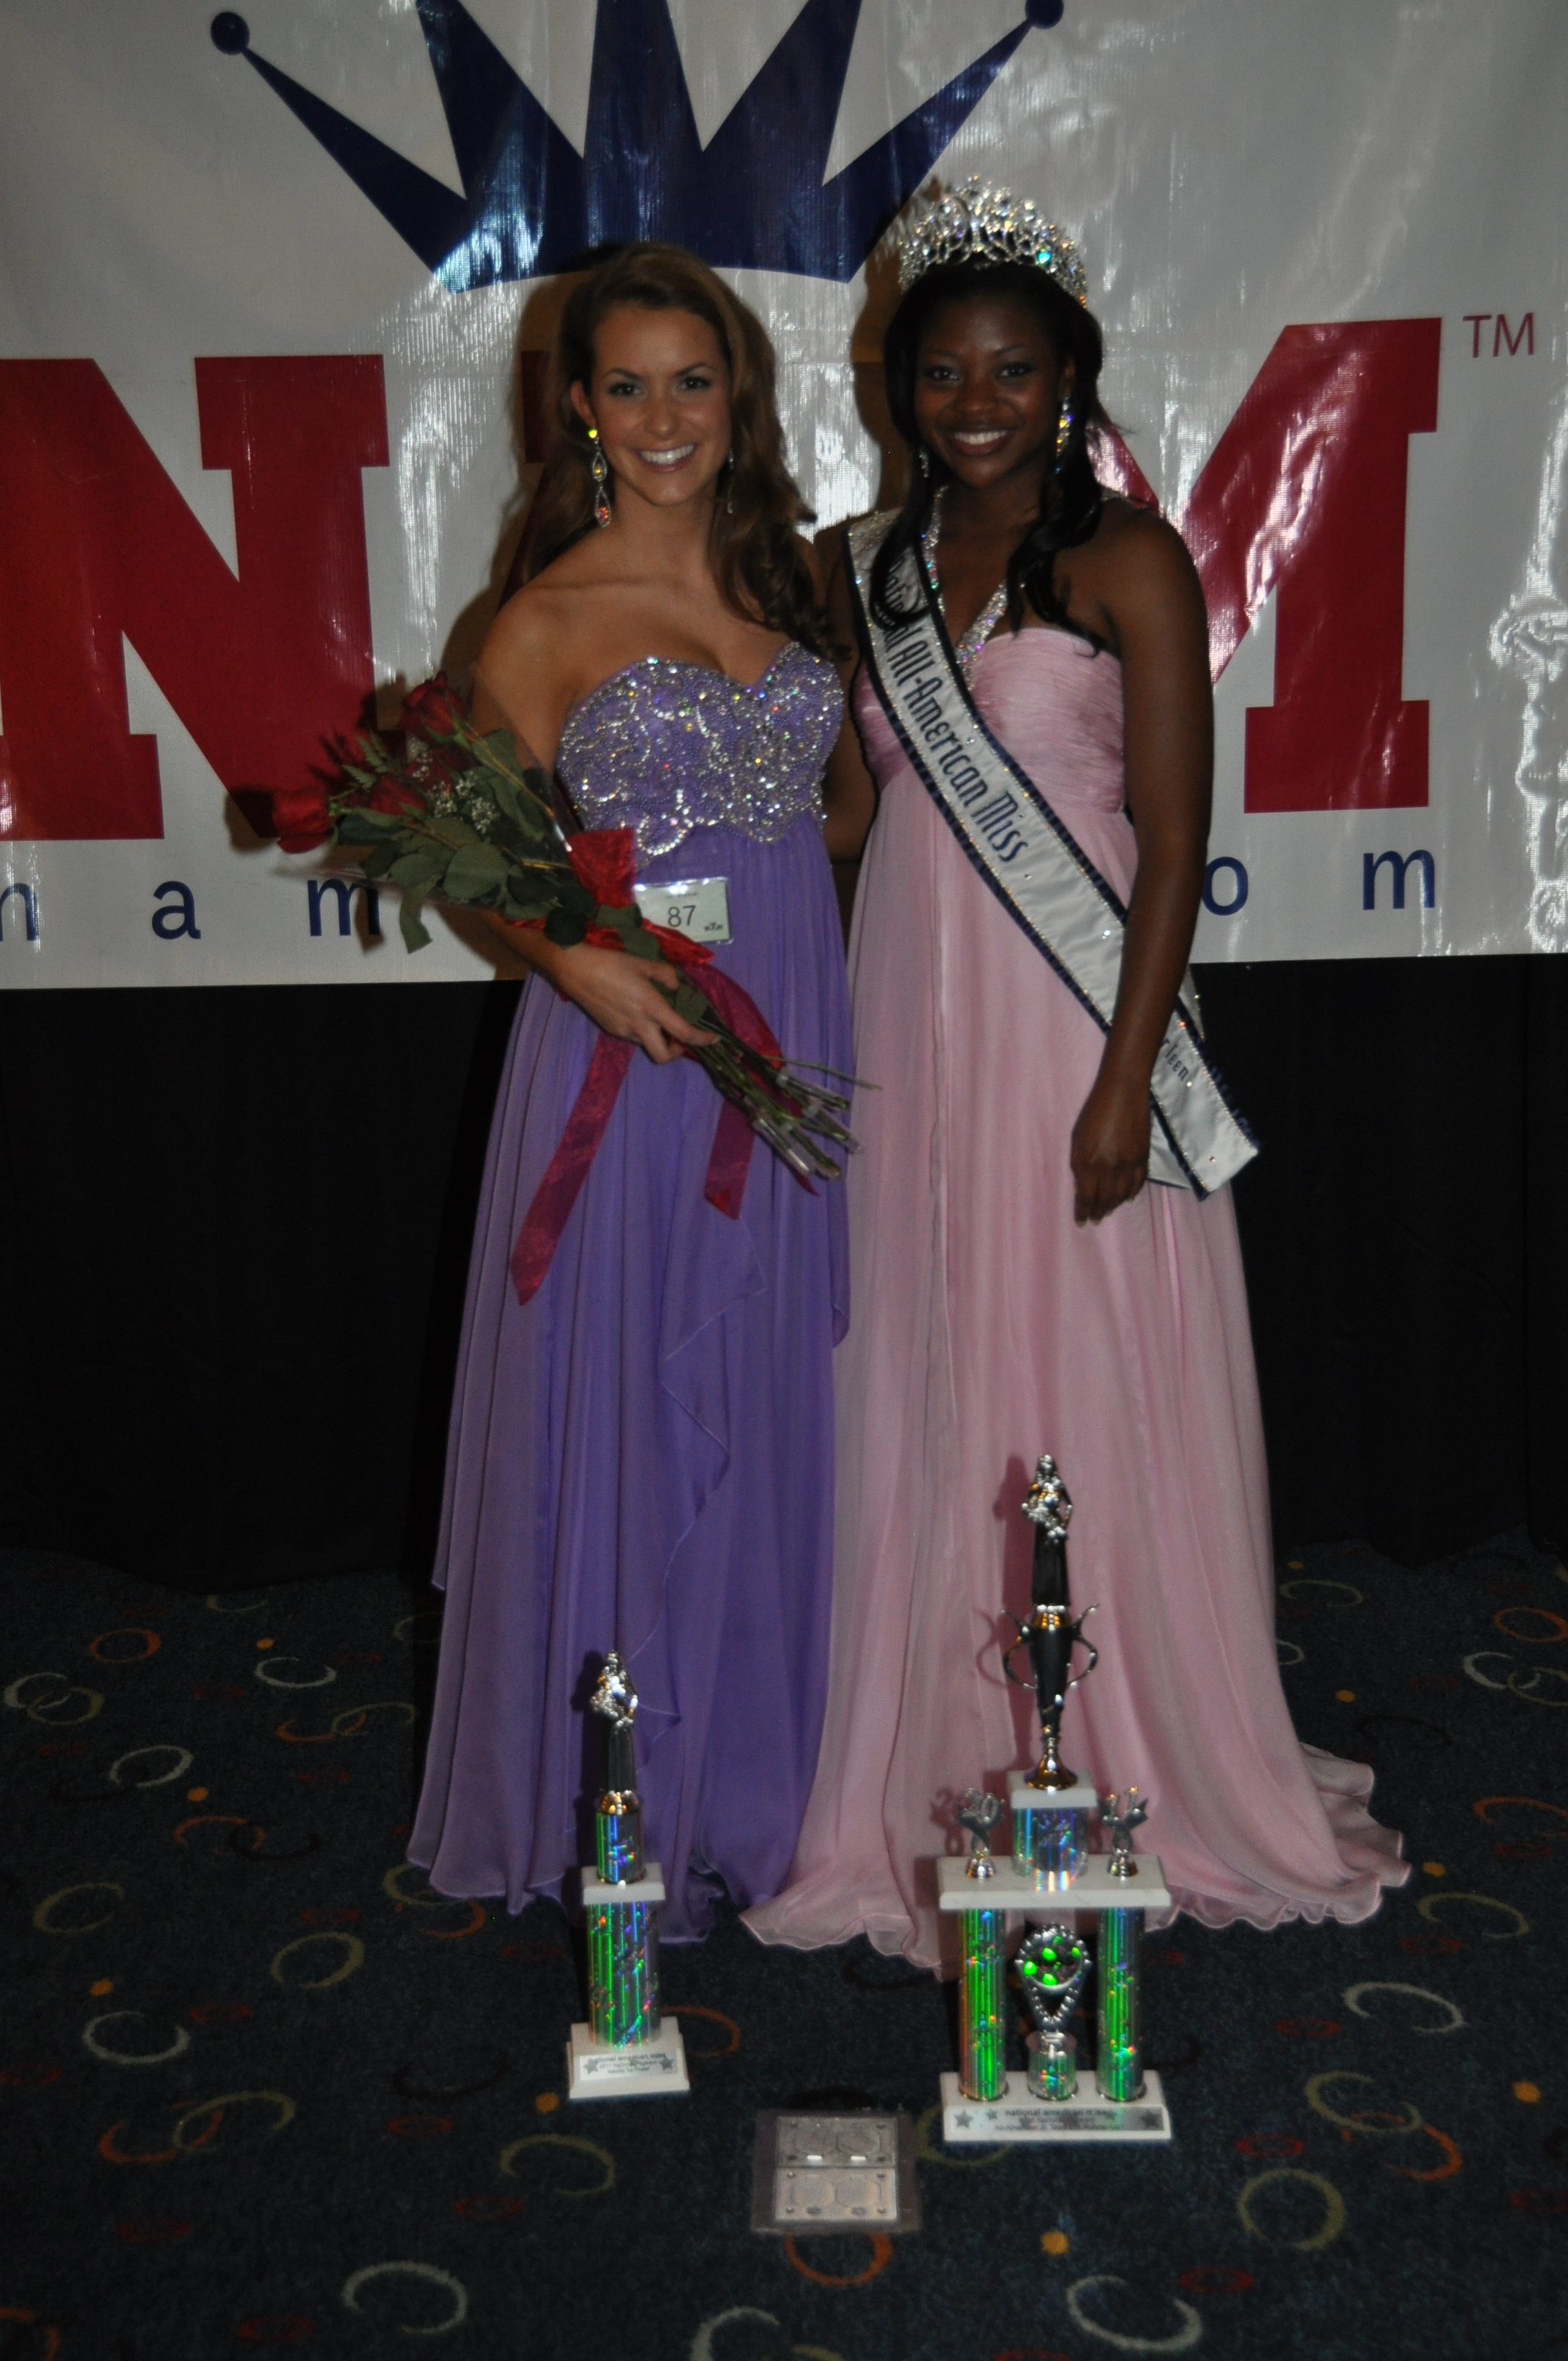 camille schrier 2nd runner up all american miss with